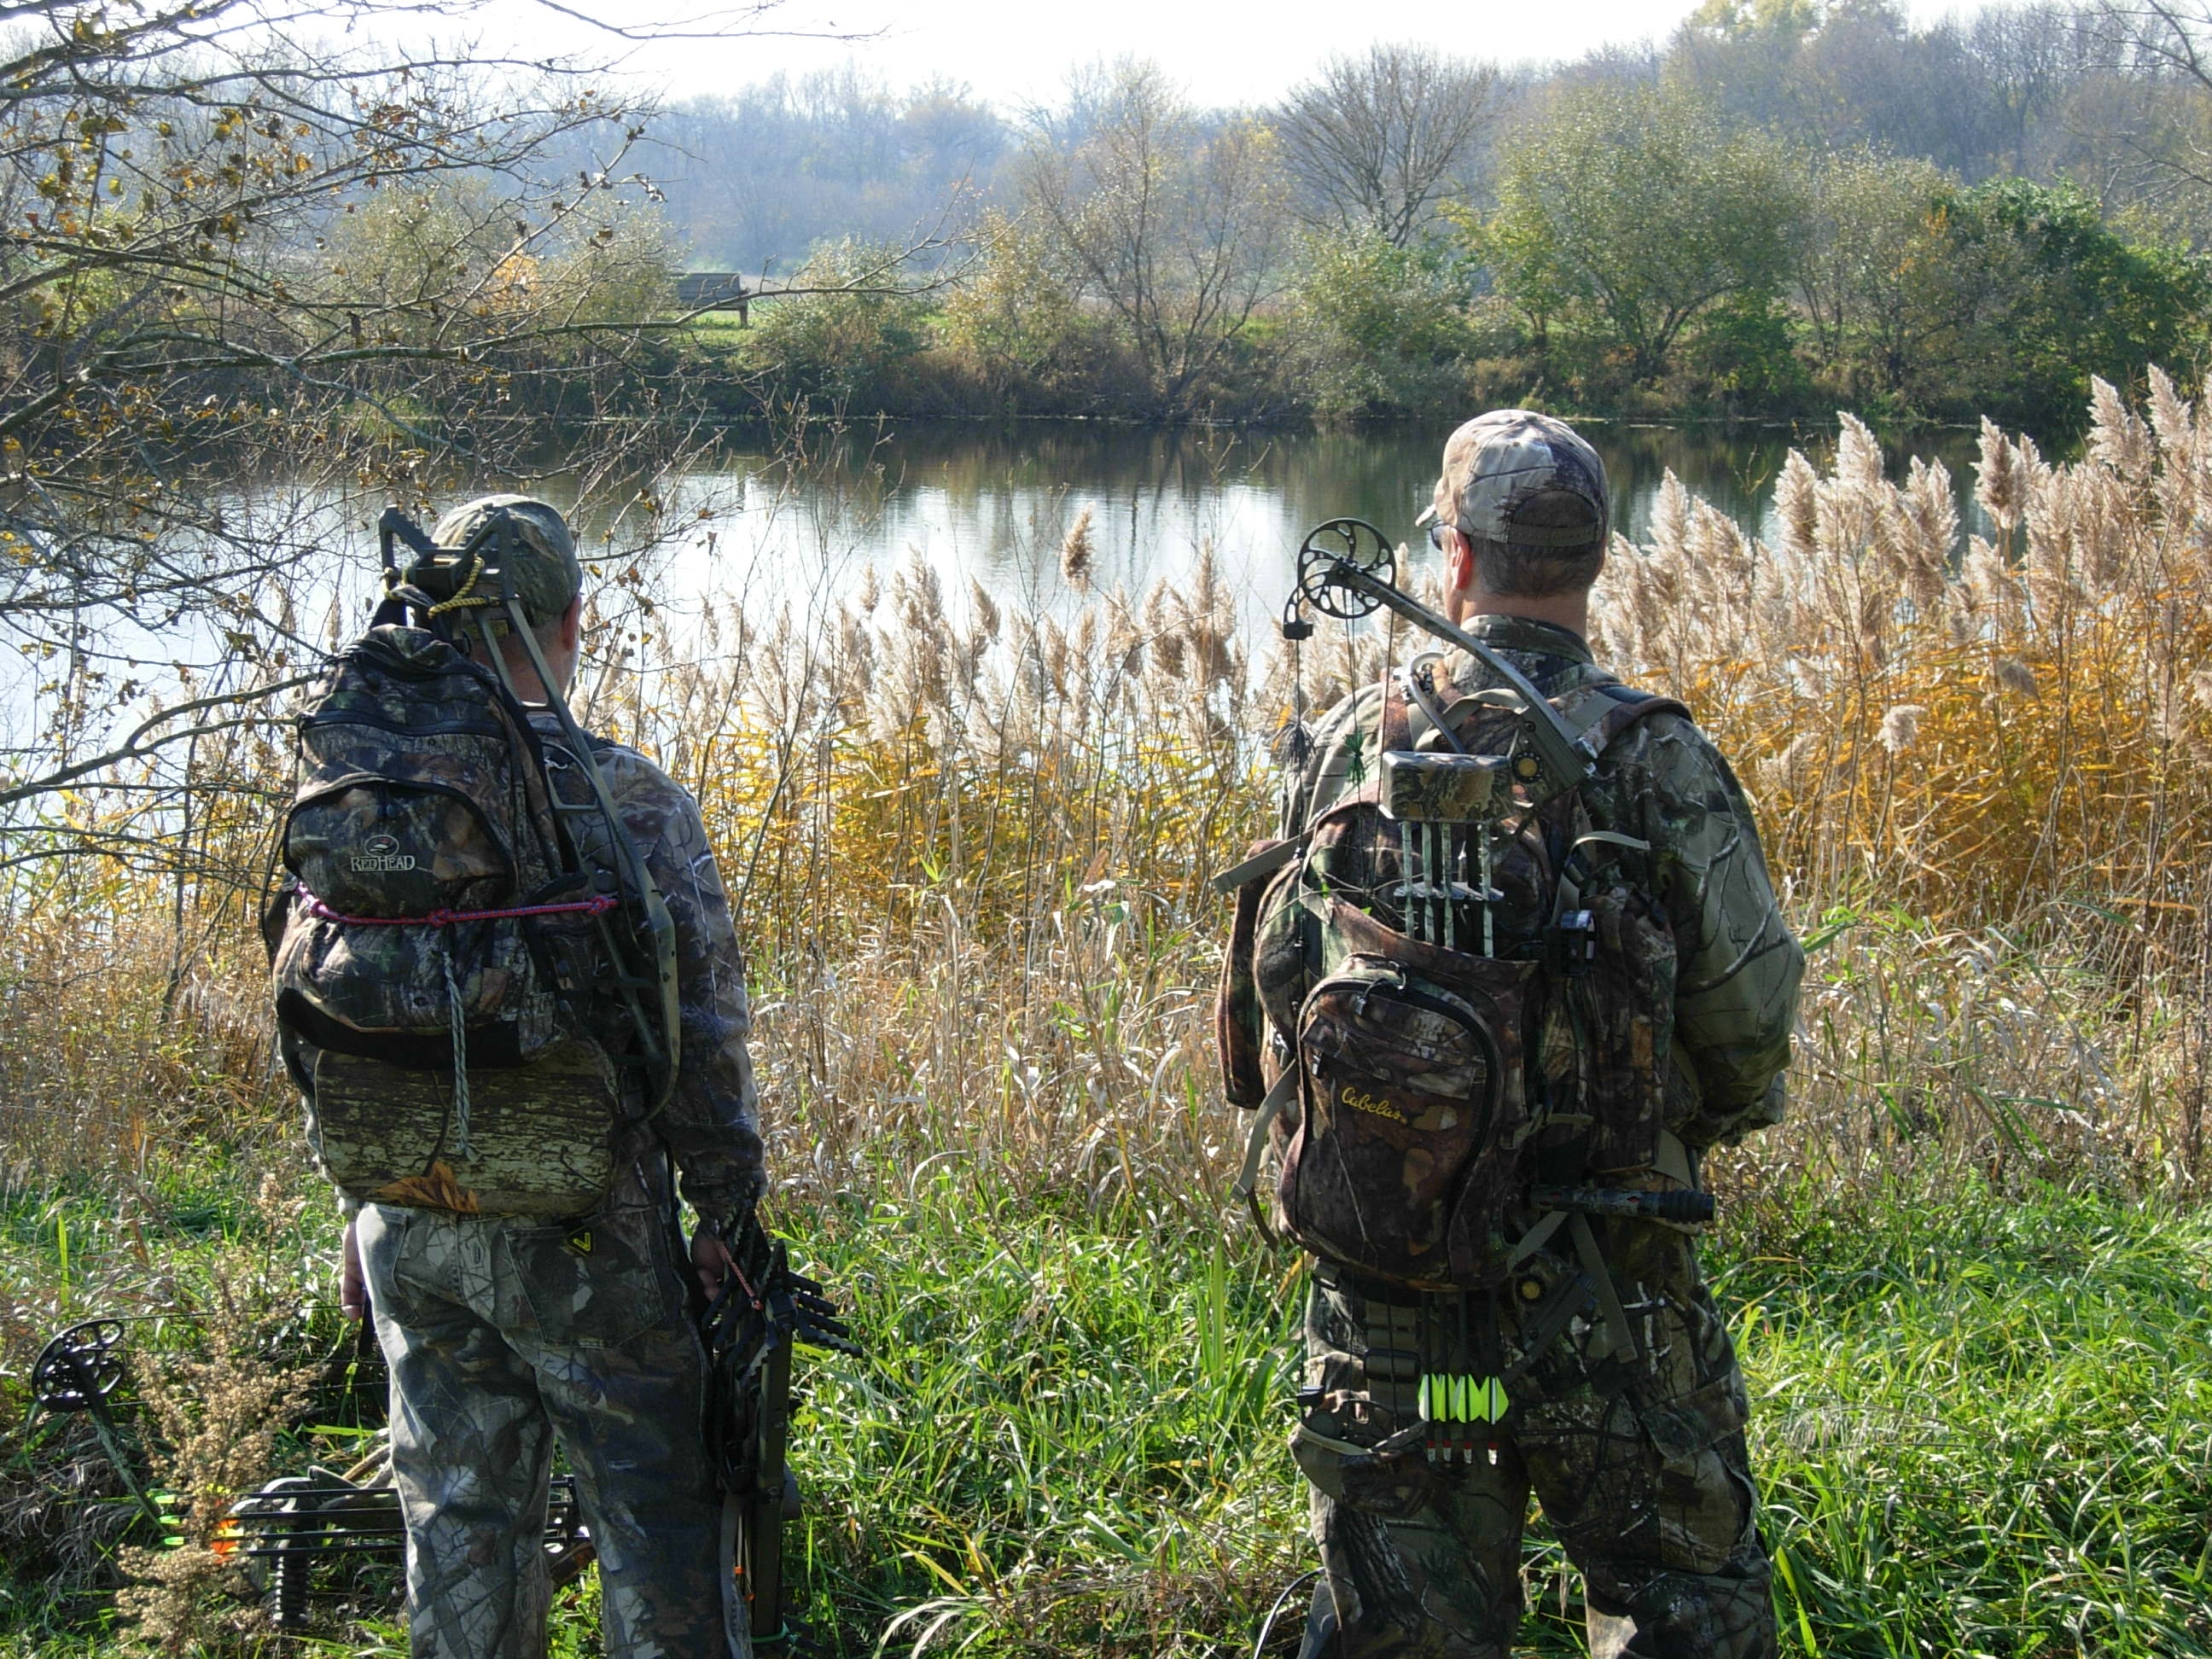 A picture of two bow hunters all in camouflage looking out over a river grassy river bank.